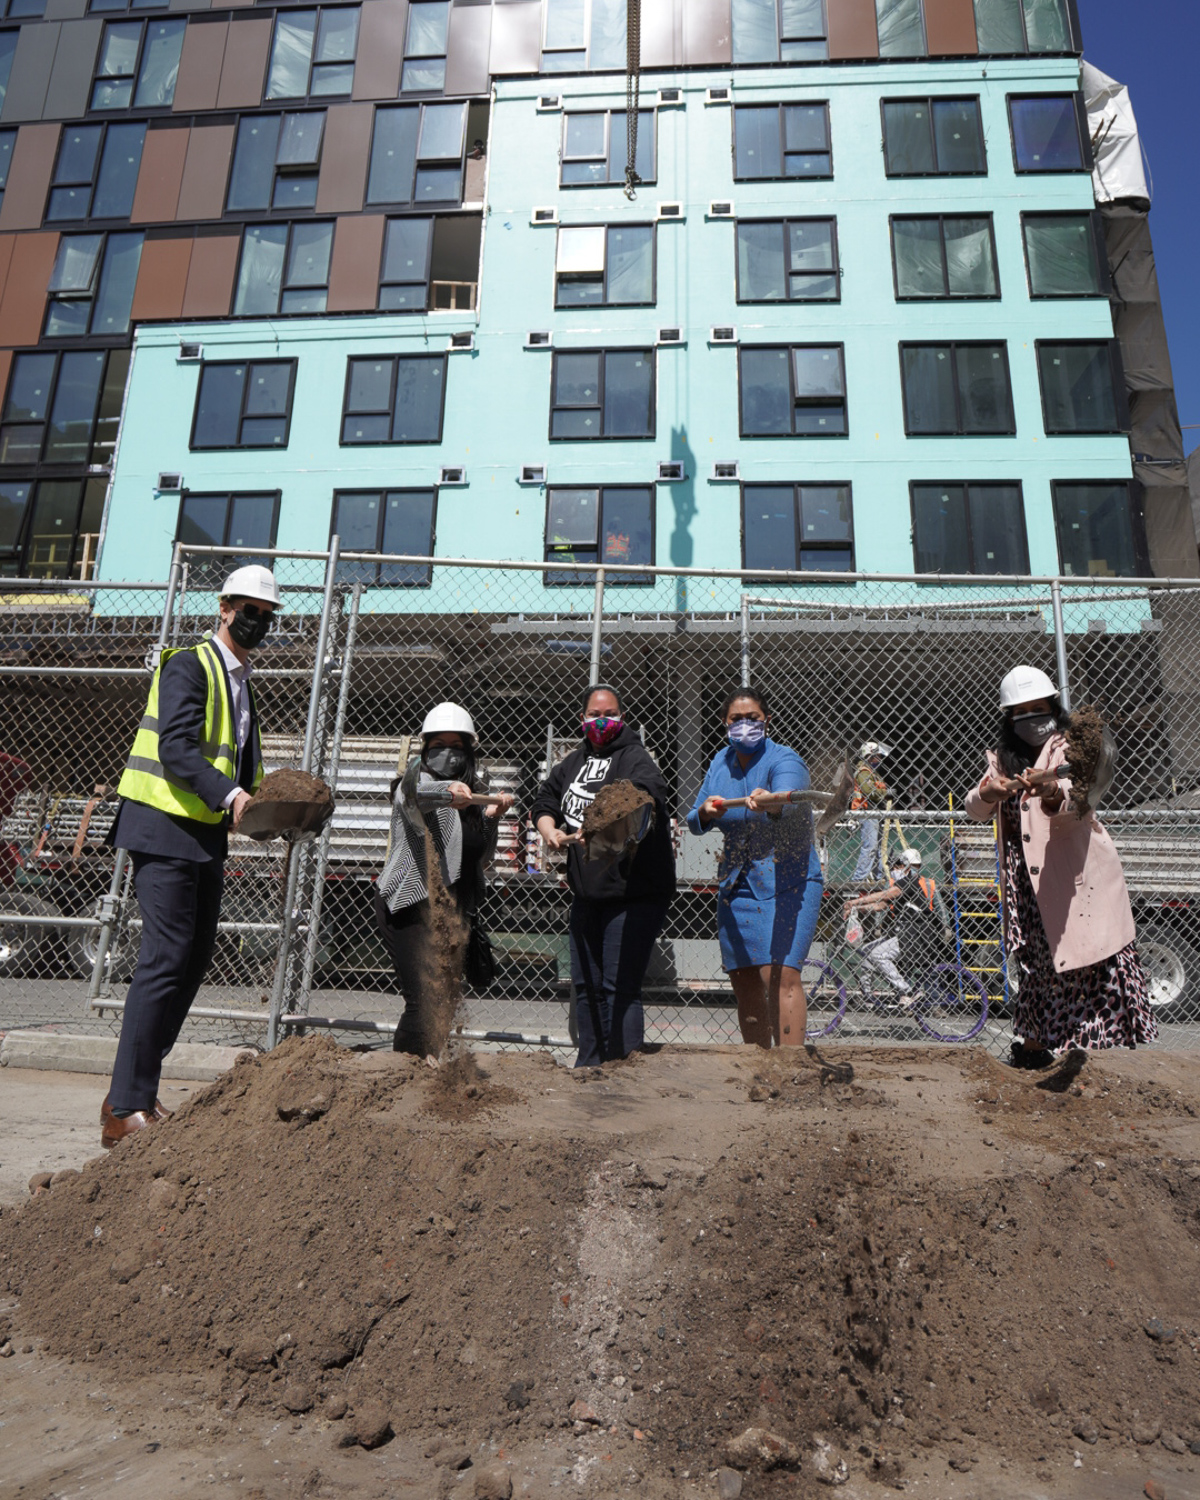 Pictured (Left to Right) Brookfield Properties Jack Sylvan and Juslyn Manalo, United Playaz Misha Olivas, Mayor London Breed and Brookfield Properties Swathi Bonda at 5M parks groundbreaking and housing topping out celebration.